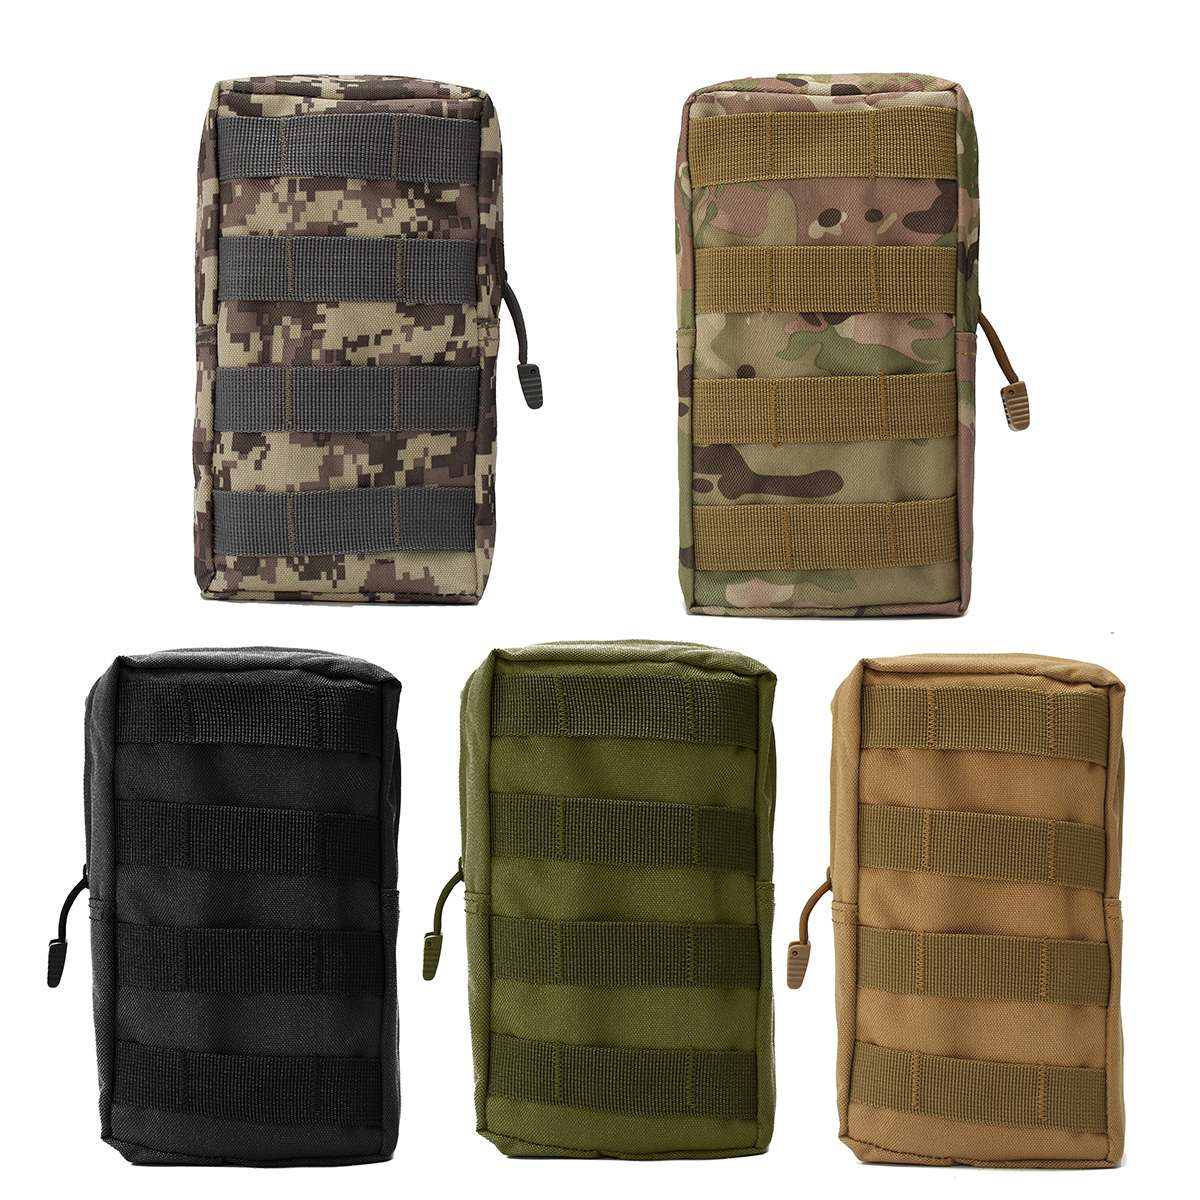 Safurance Nylon Tactical Molle Waist Bag Medical First Aid Utility Emergency Pouch Outdoor Storage Bag Emergency Kits цена